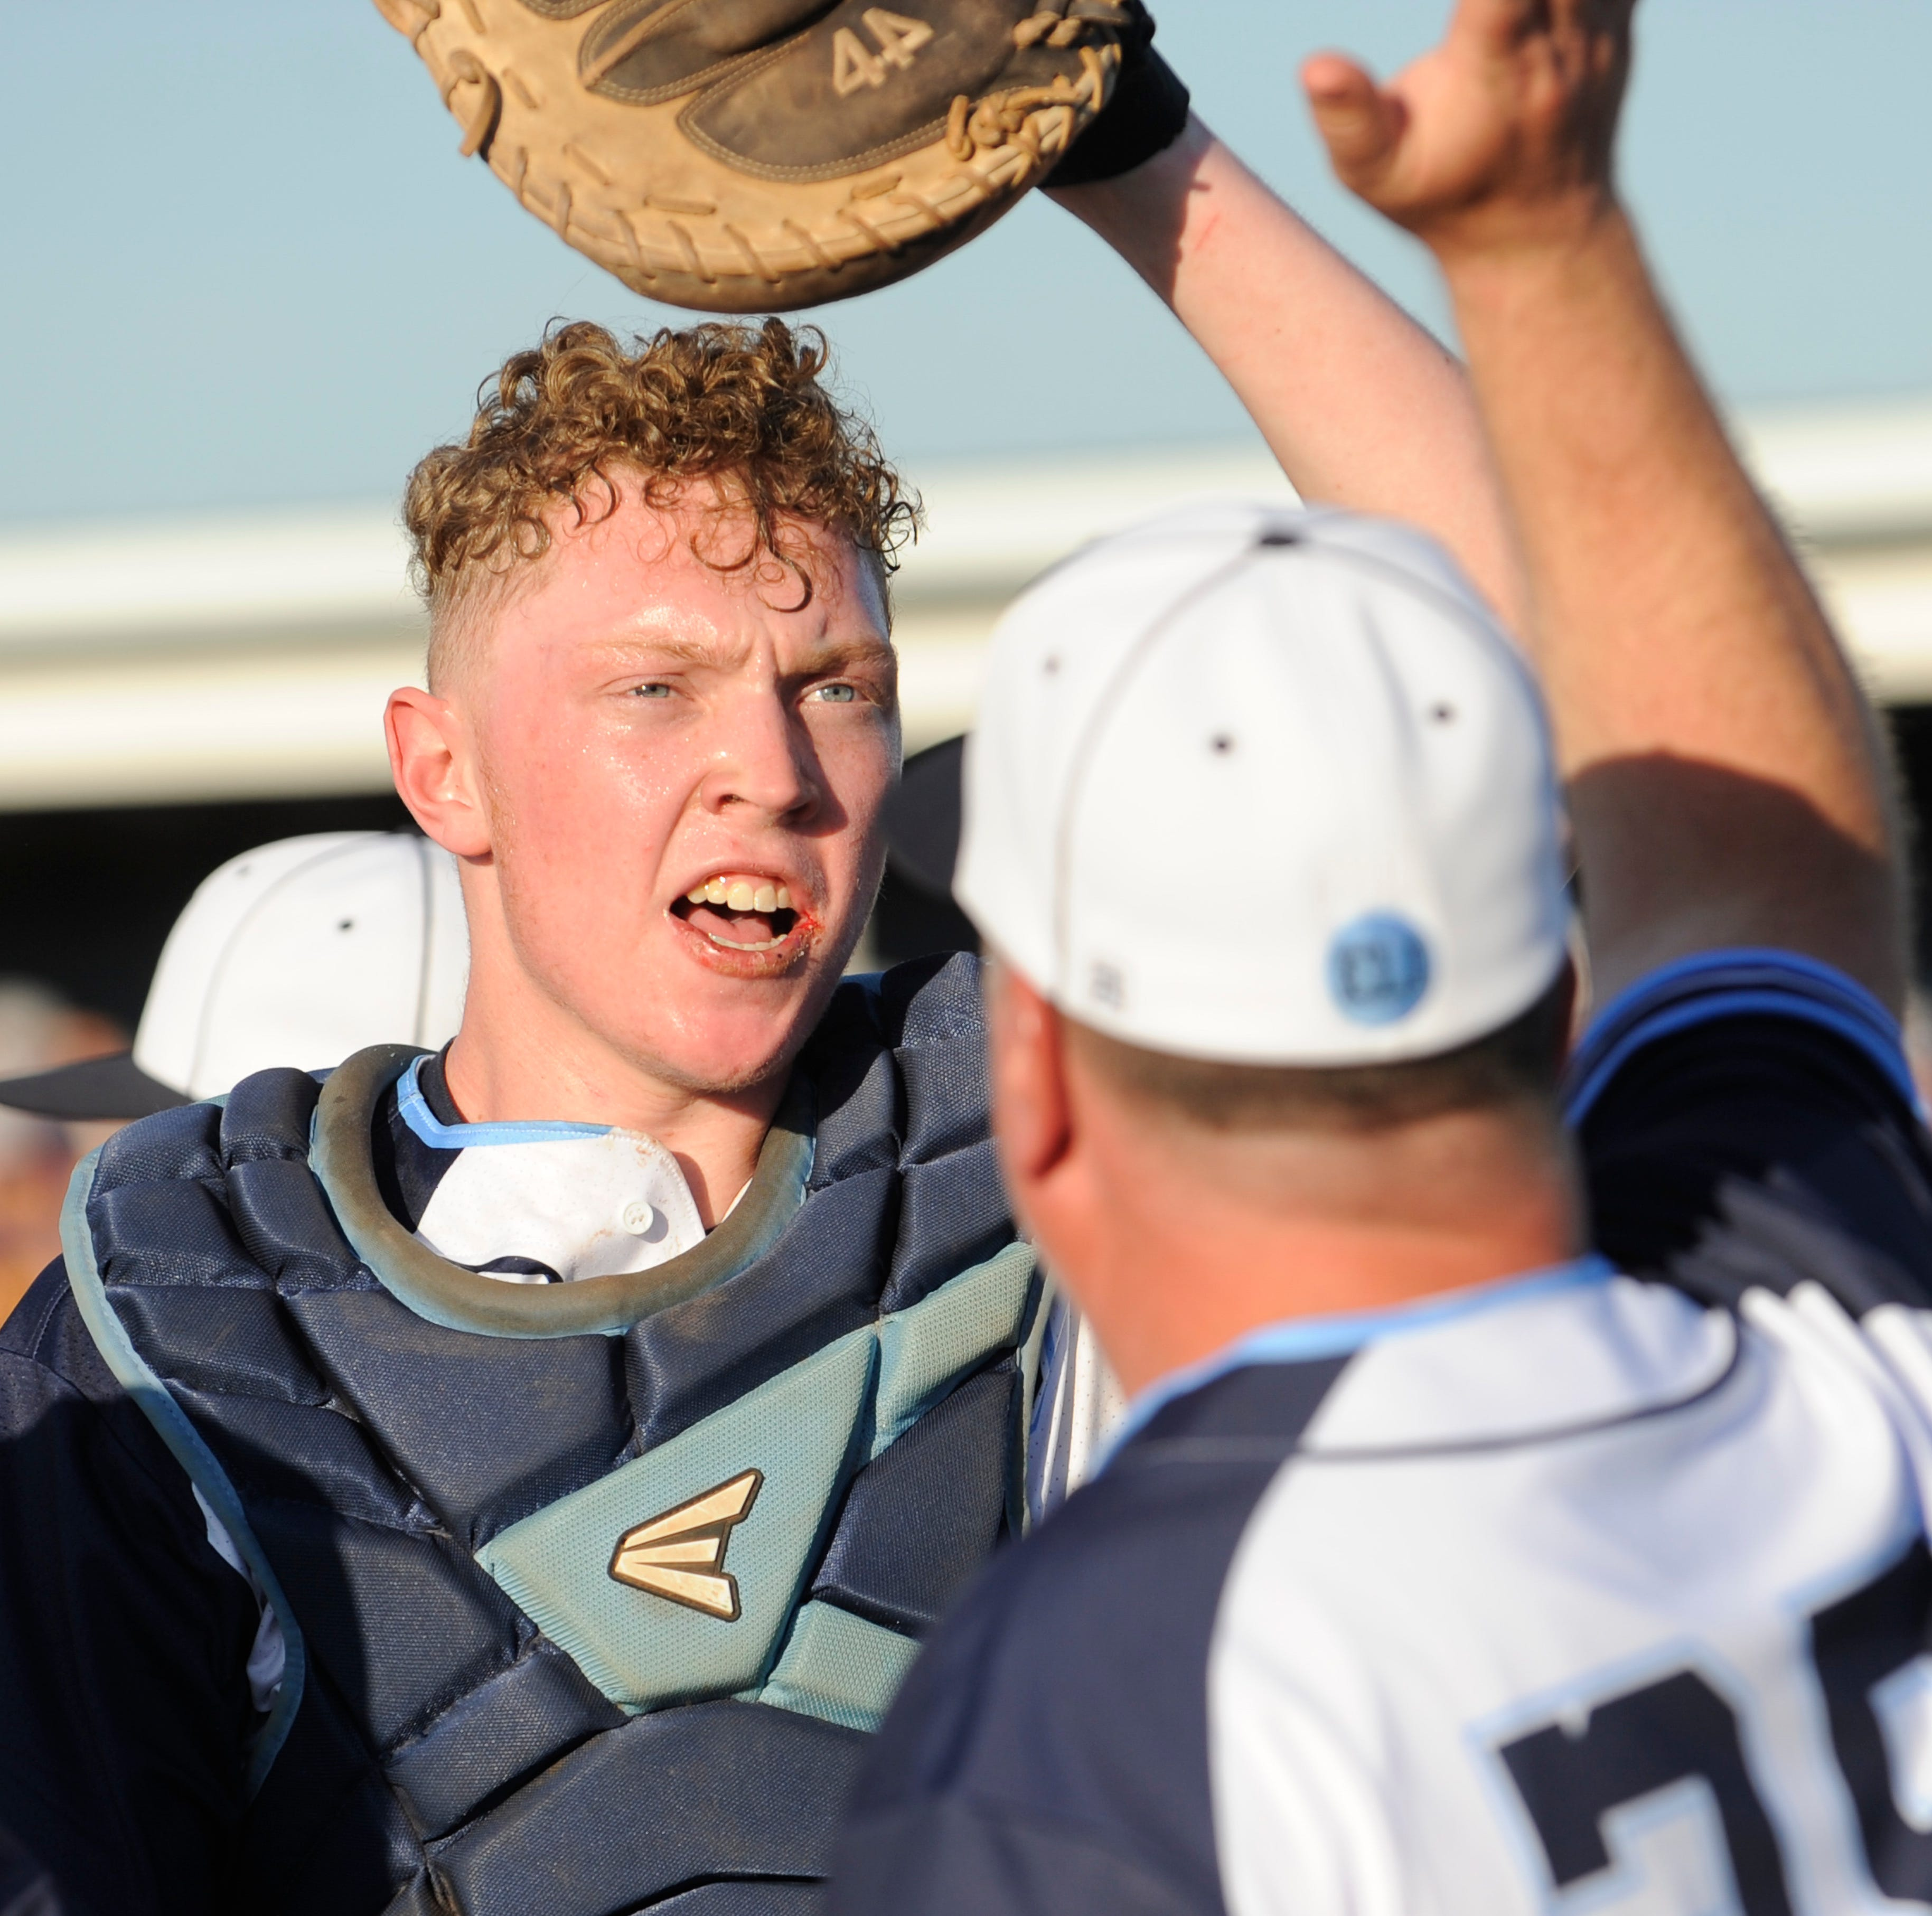 OHIO HS BASEBALL: Adena spoils Unioto's chance at claiming SVC title, defeats Shermans 6-3